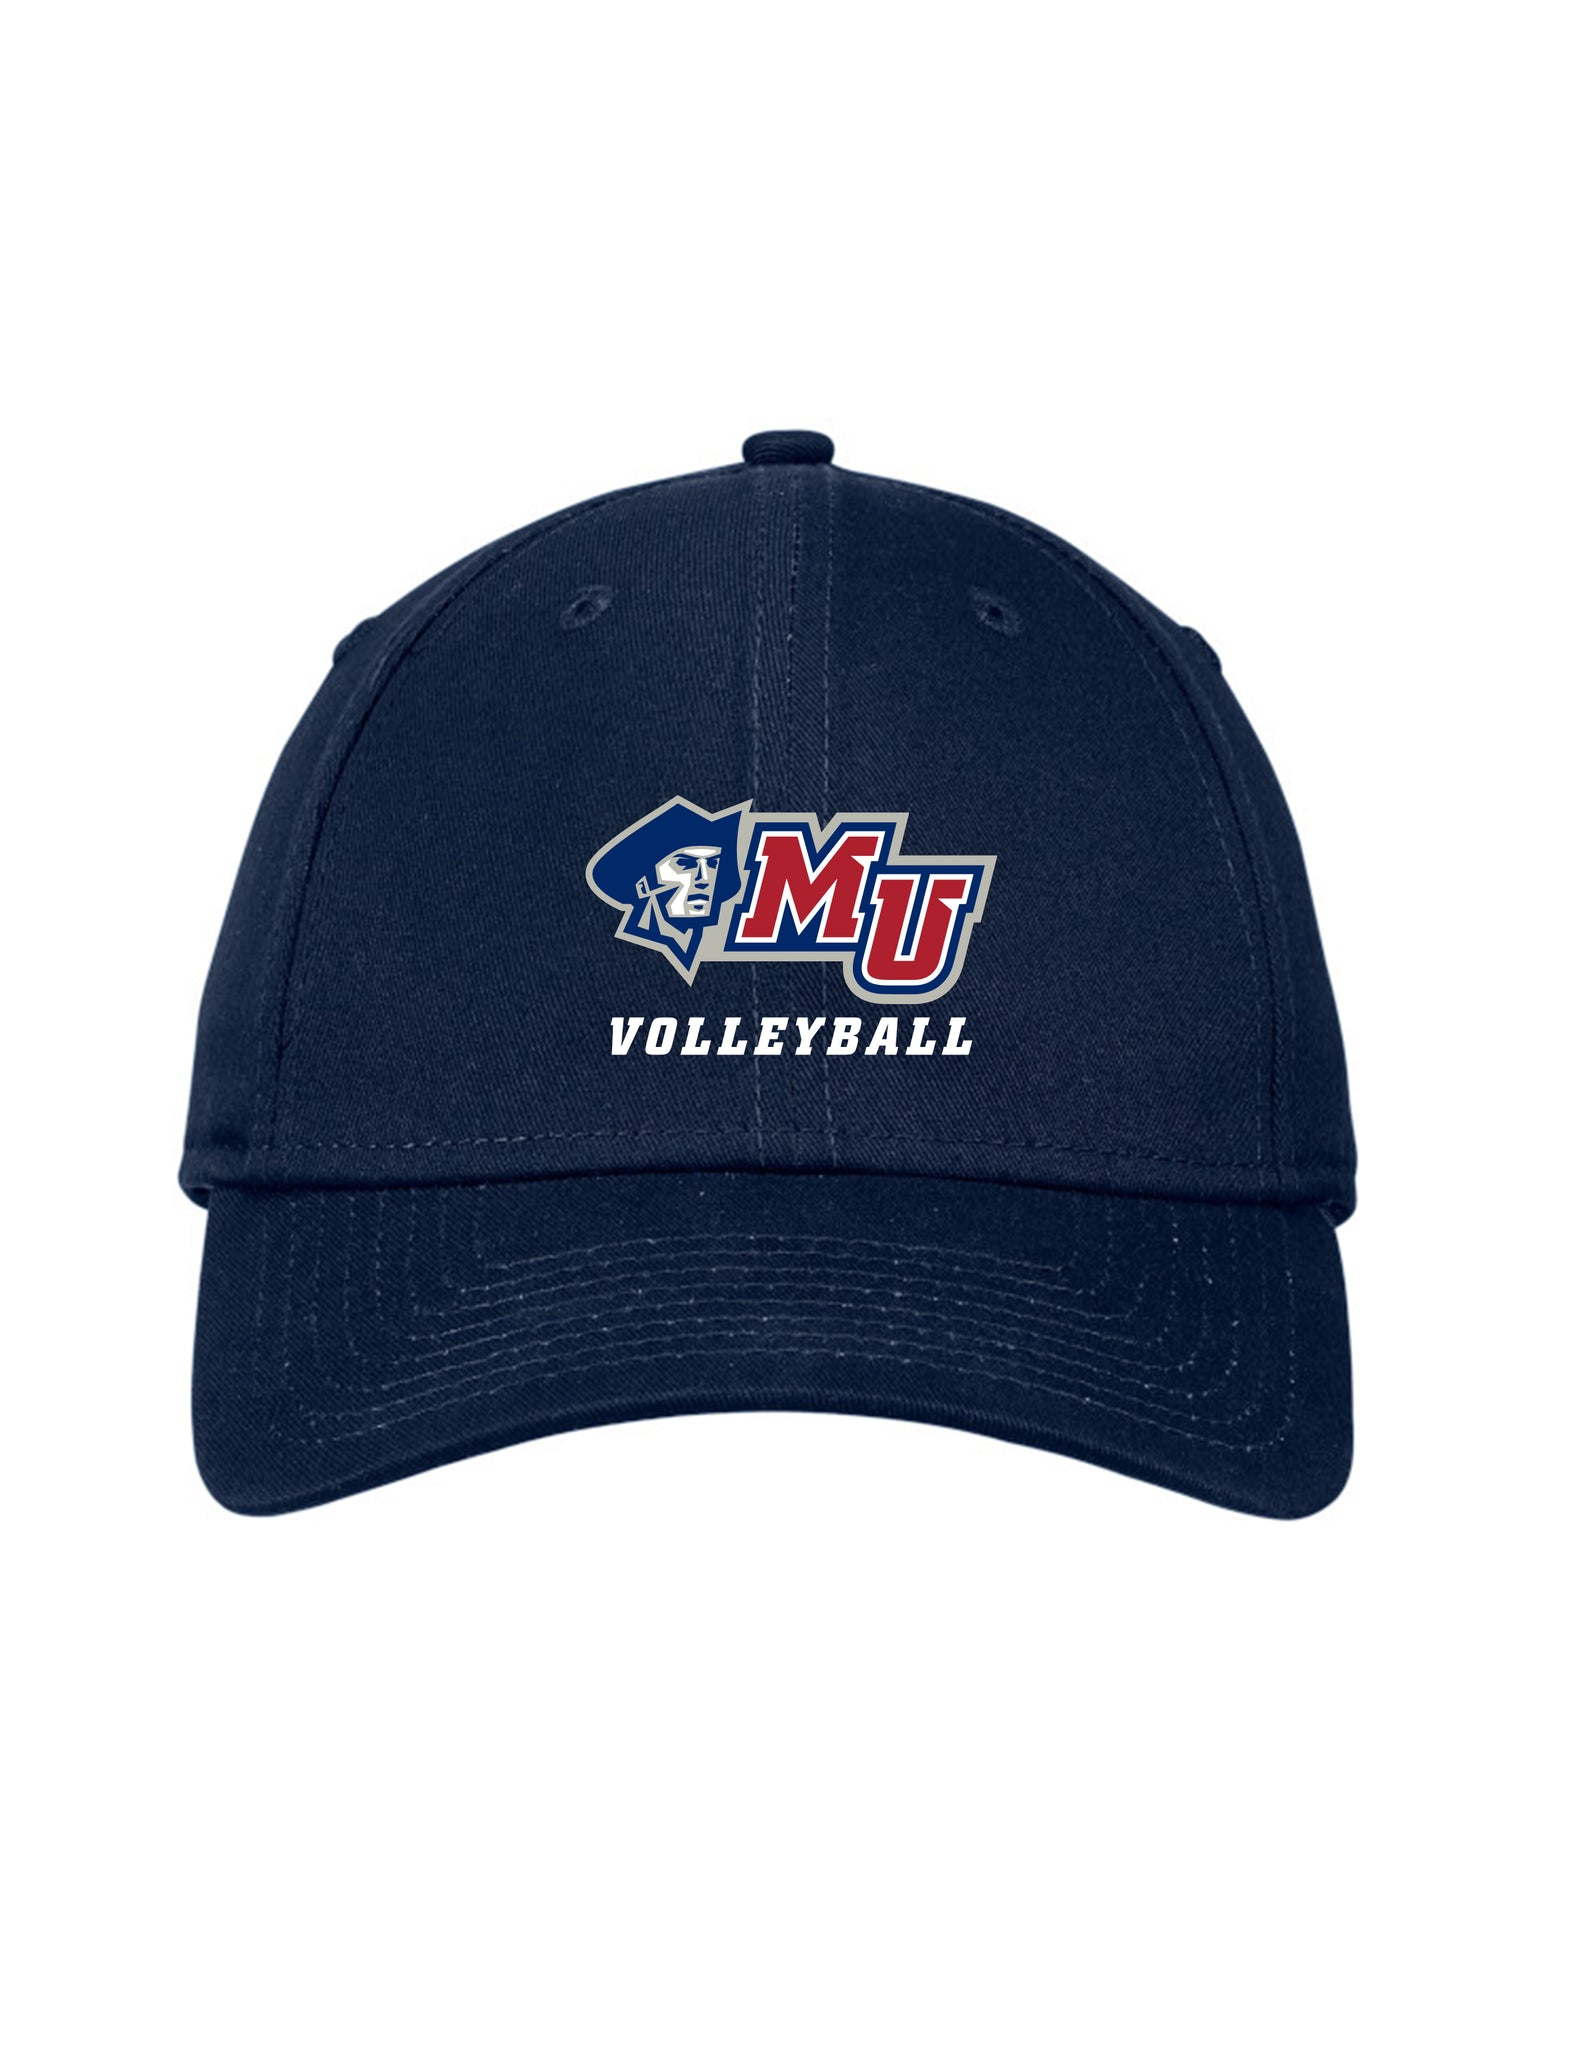 Malone Volleyball Adjustable Hat